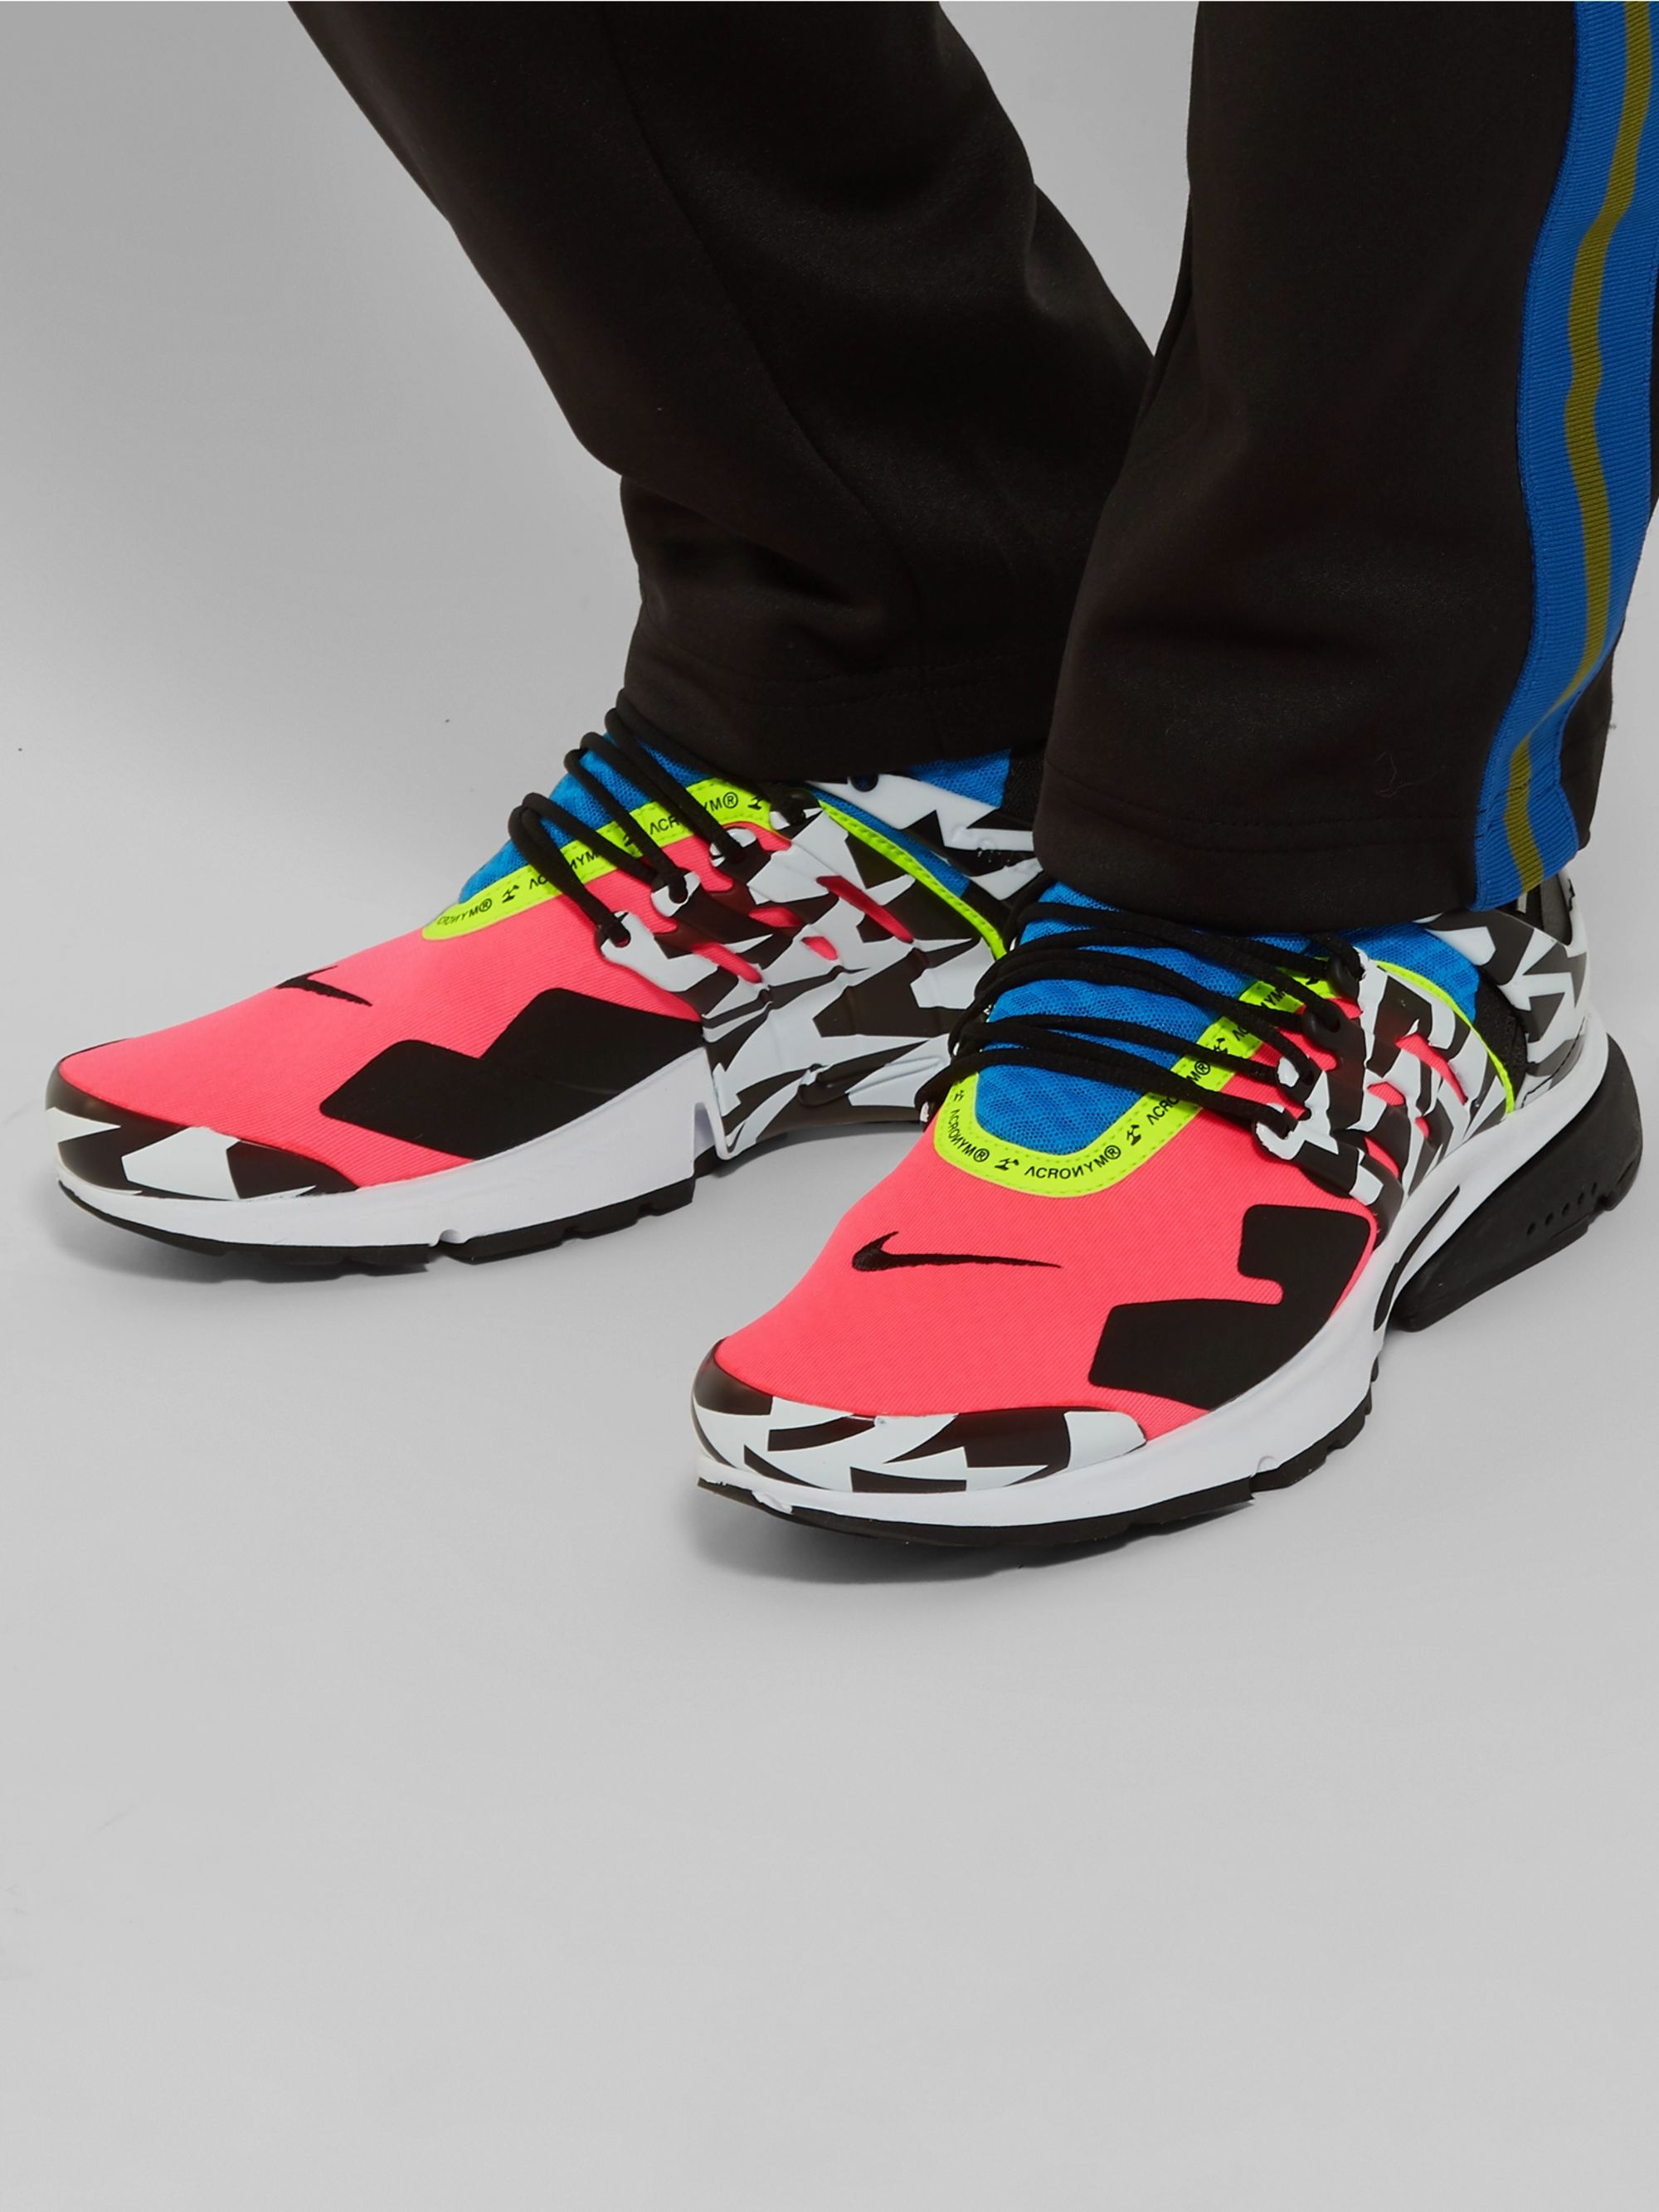 + Acronym Air Presto Mid Leather and Rubber Trimmed Mesh Sneakers